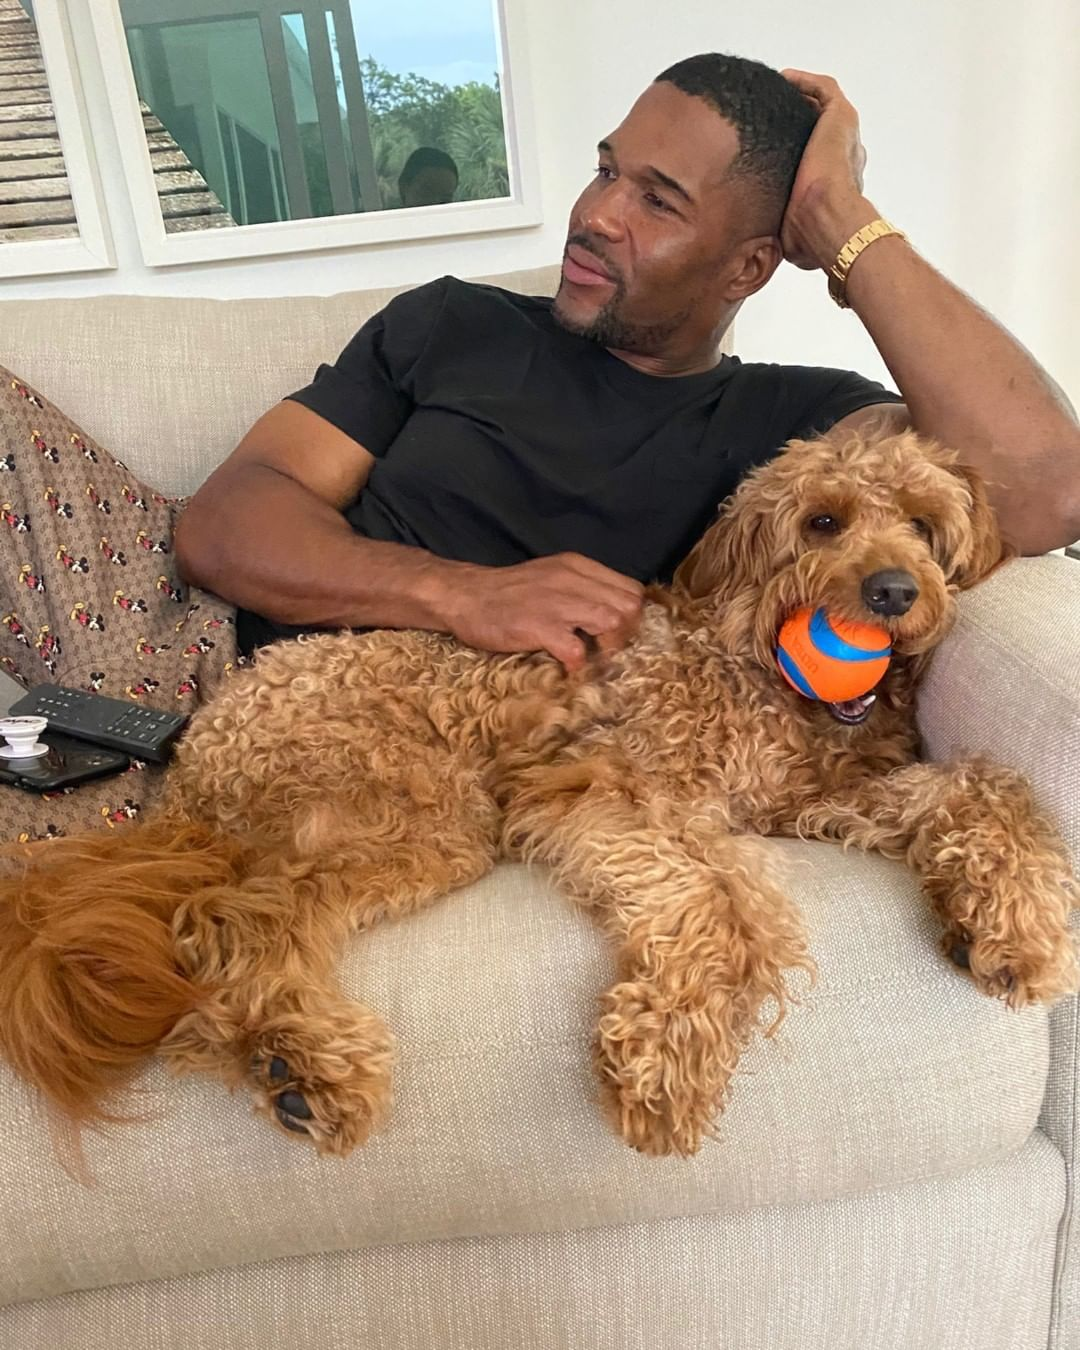 """The Good Morning America host's sweet pup, Enzo, is a cuddler! """"Enzo wouldn't let me relax alone. LOL!"""" Strahan wrote, adding, """"#Enzoistheboss."""""""